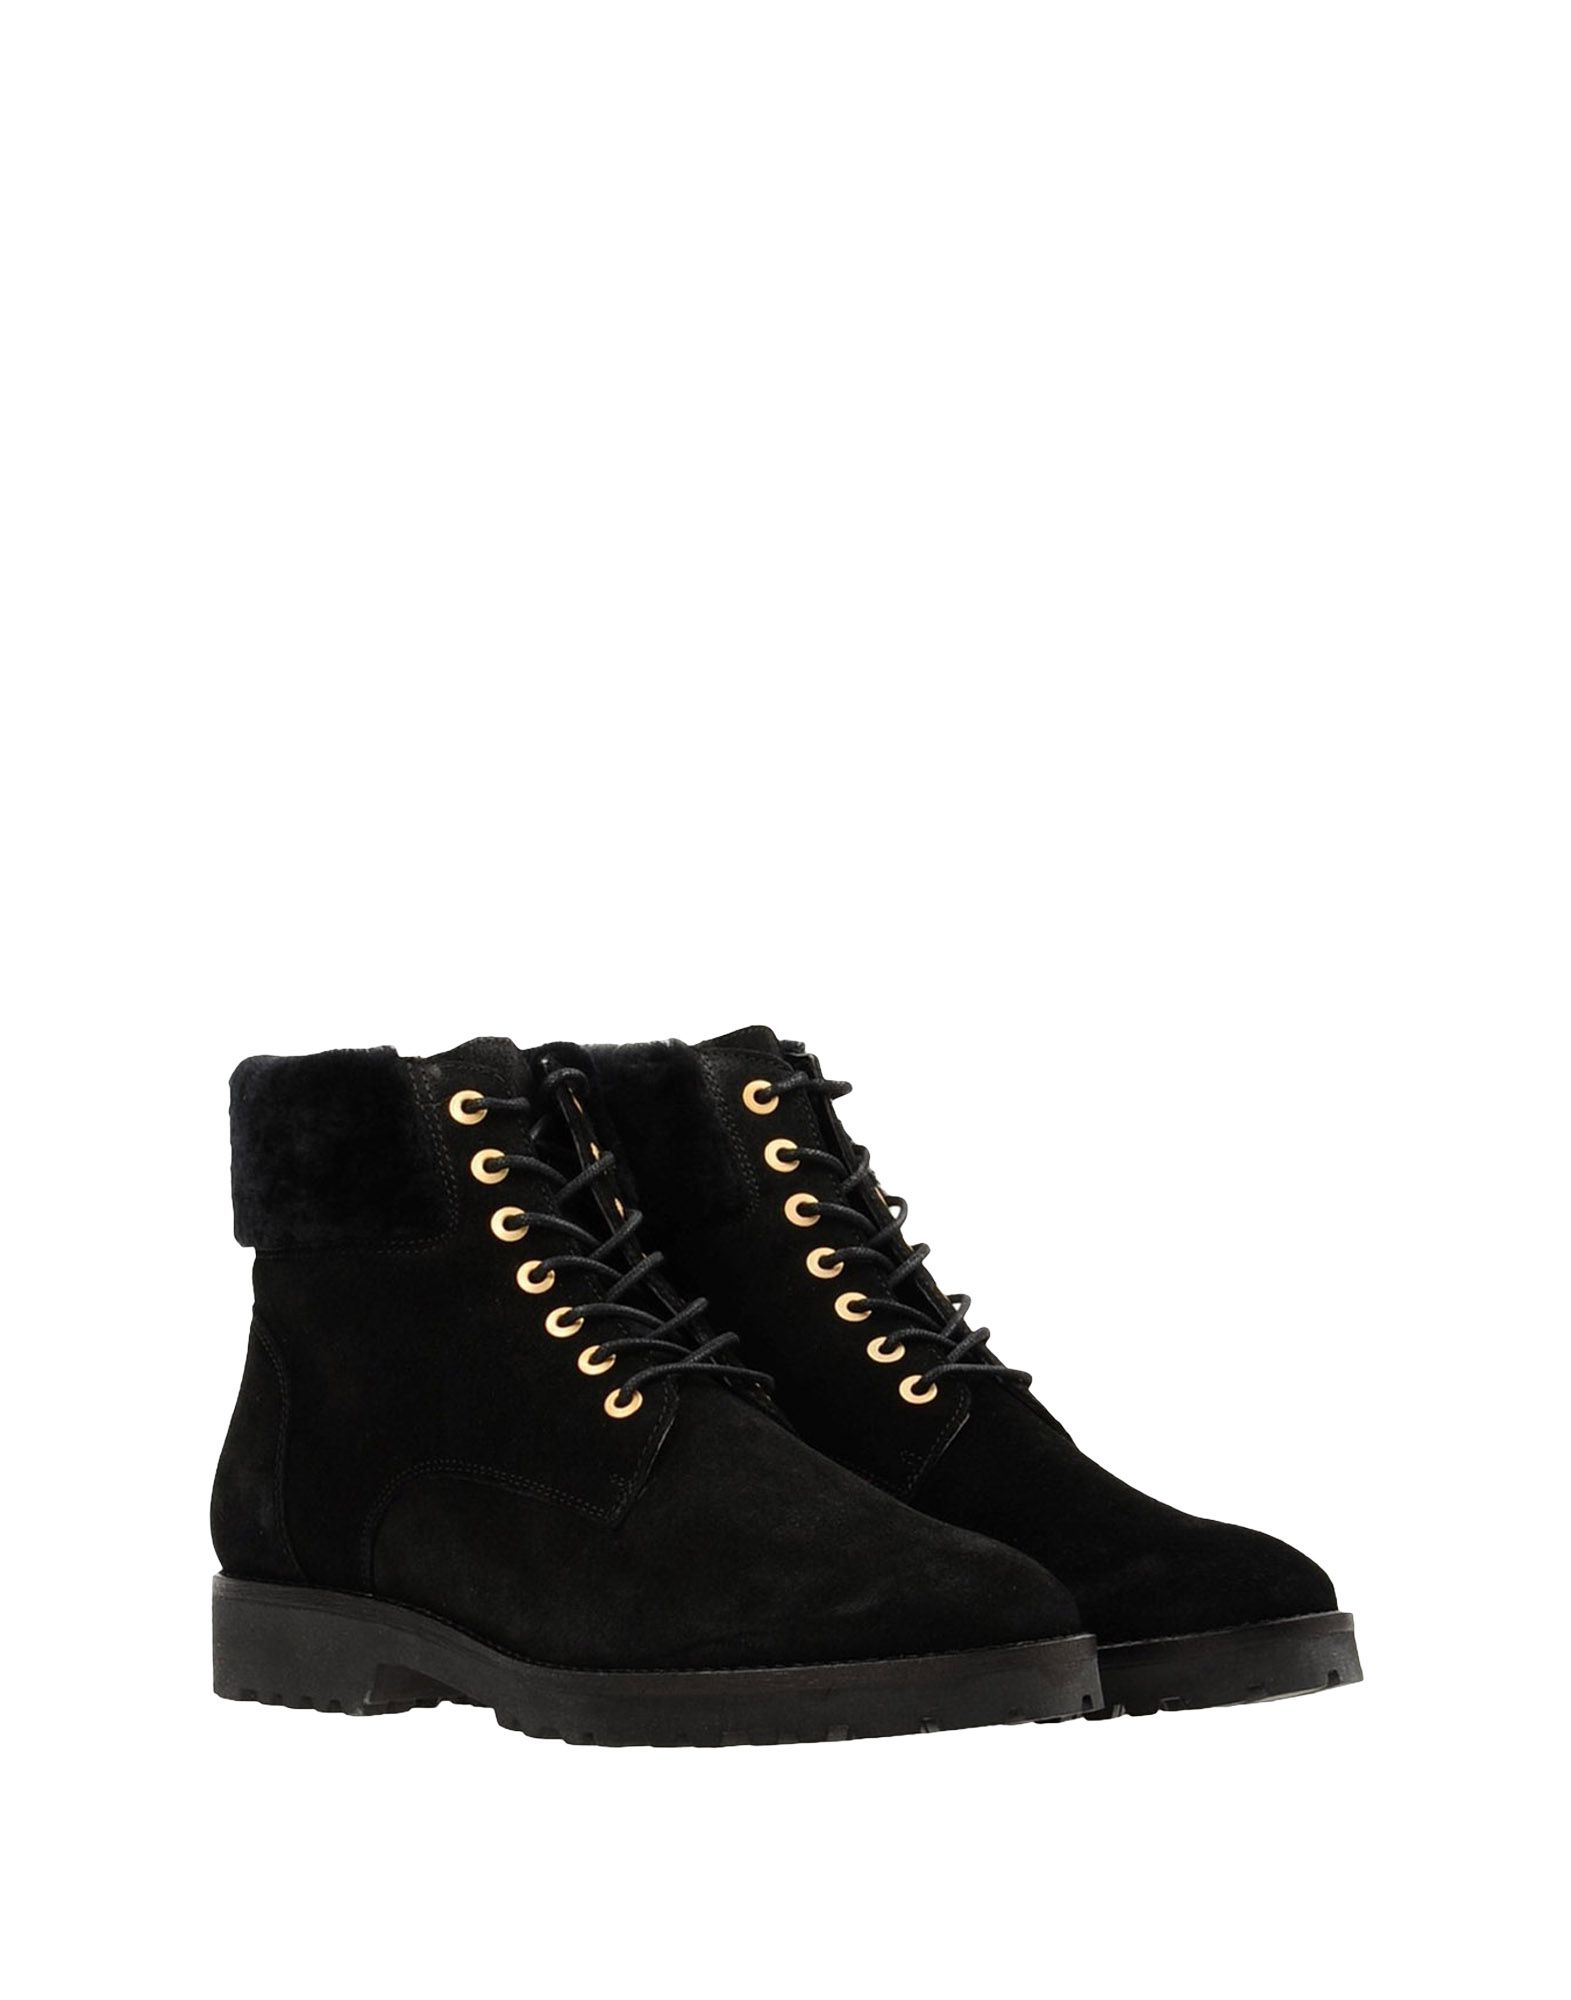 Bottine Dune London Perrinn - Femme - Bottines Dune London sur